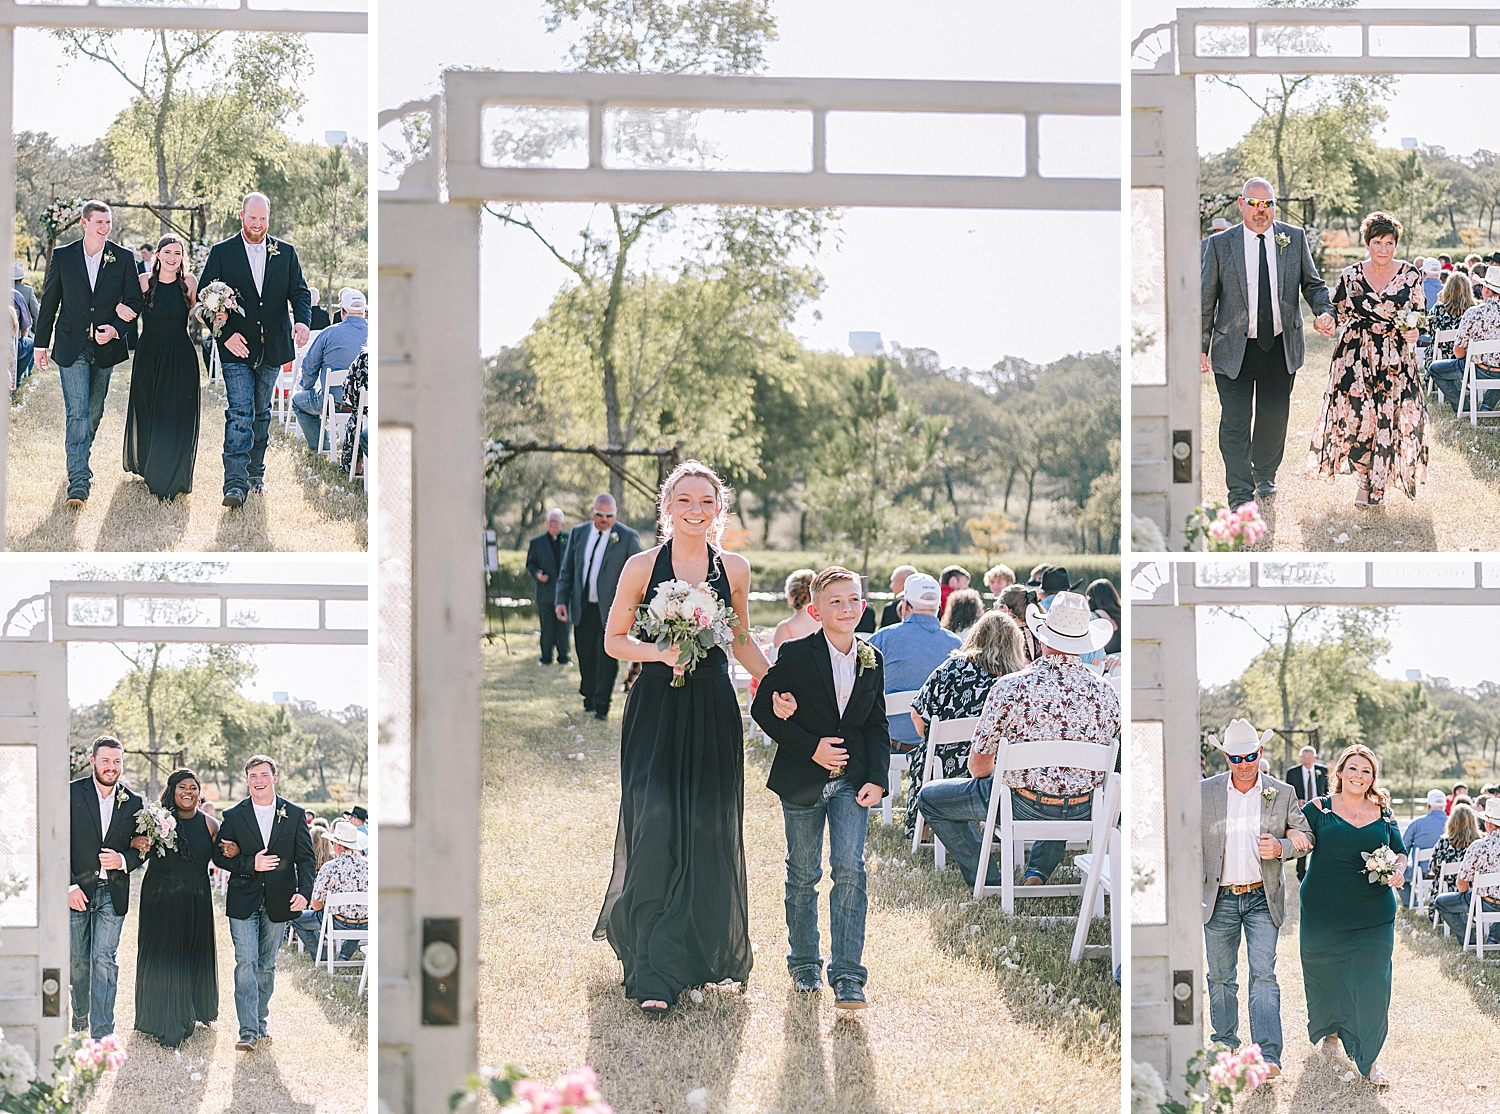 Rackler-Ranch-LaVernia-Texas-Wedding-Carly-Barton-Photography_0068.jpg